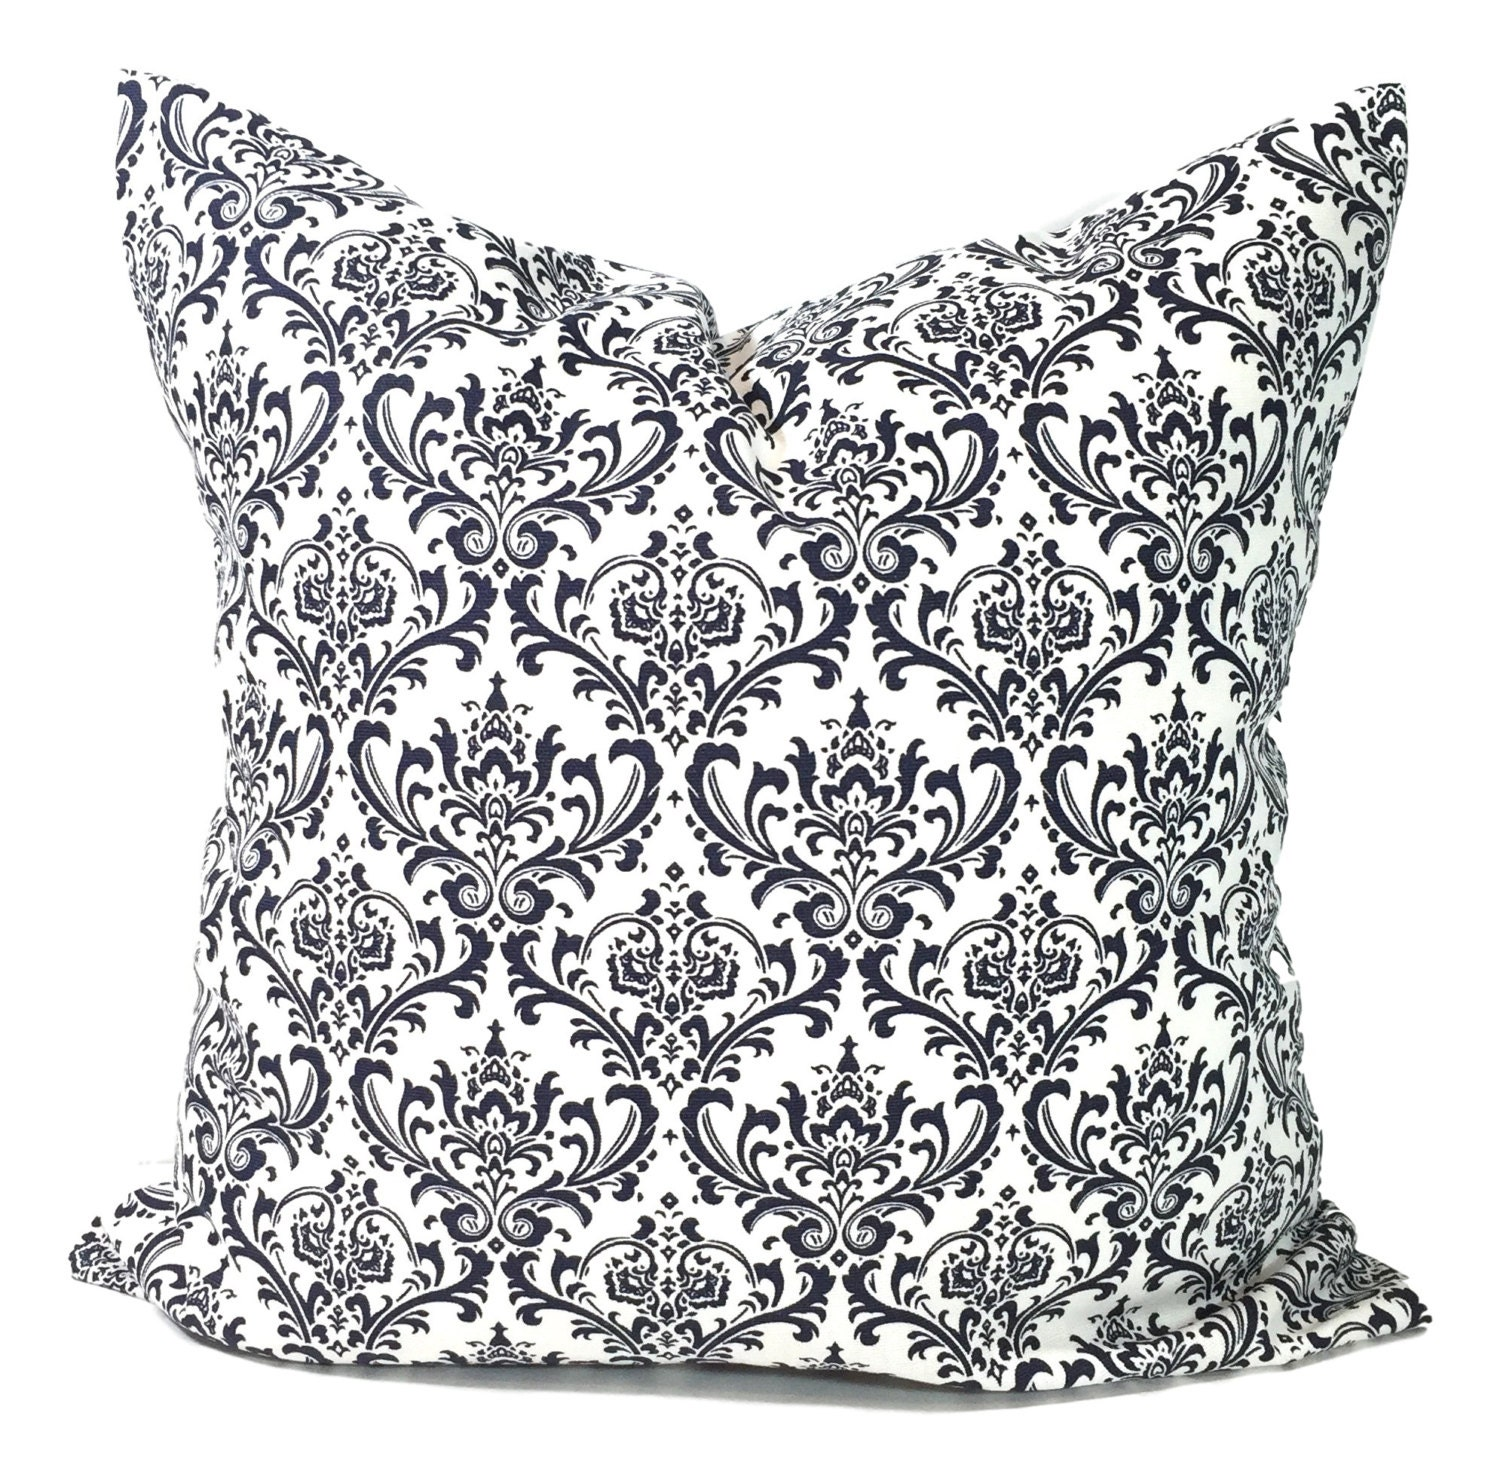 Decorative Pillows Navy : Navy Blue Pillows Decorative.Pillow Cover Blue Pillow Navy